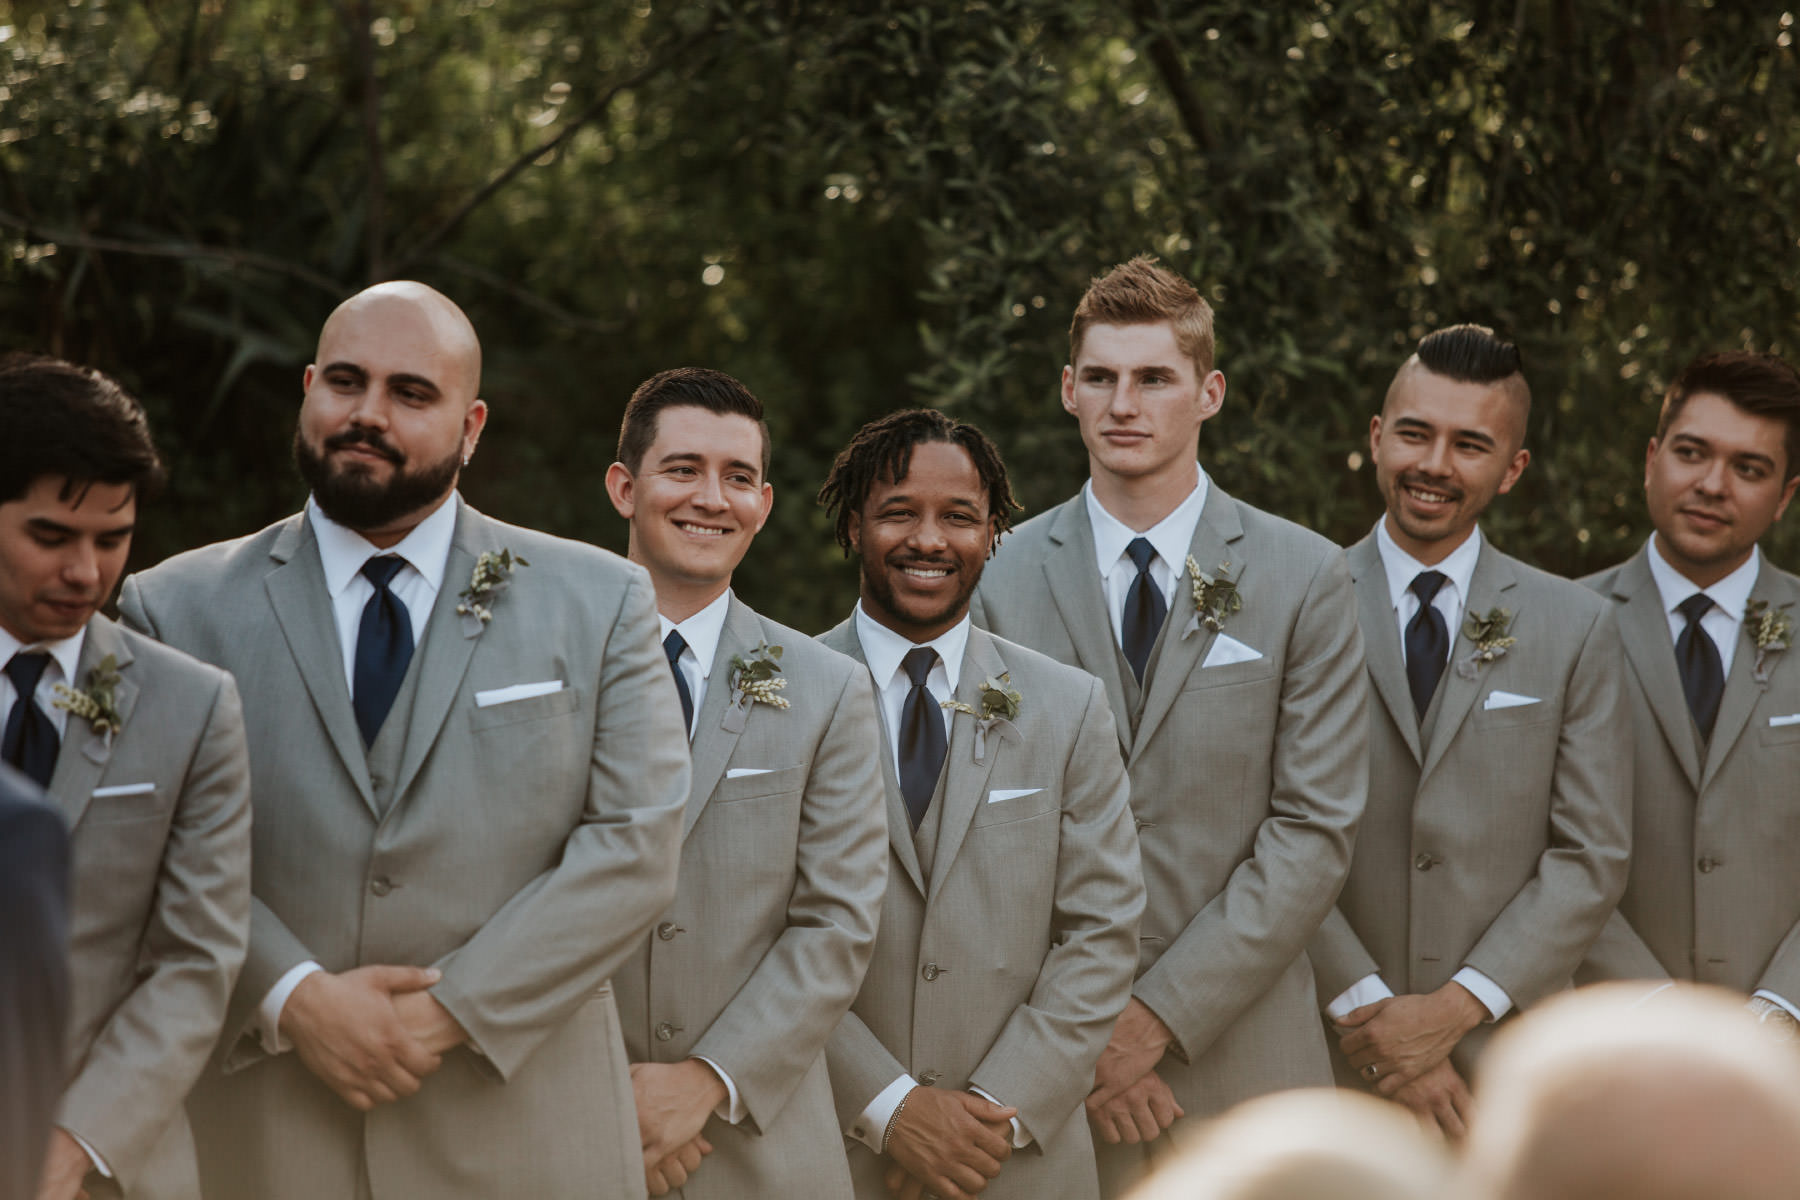 Groomsmen wearing gray suits with navy ties